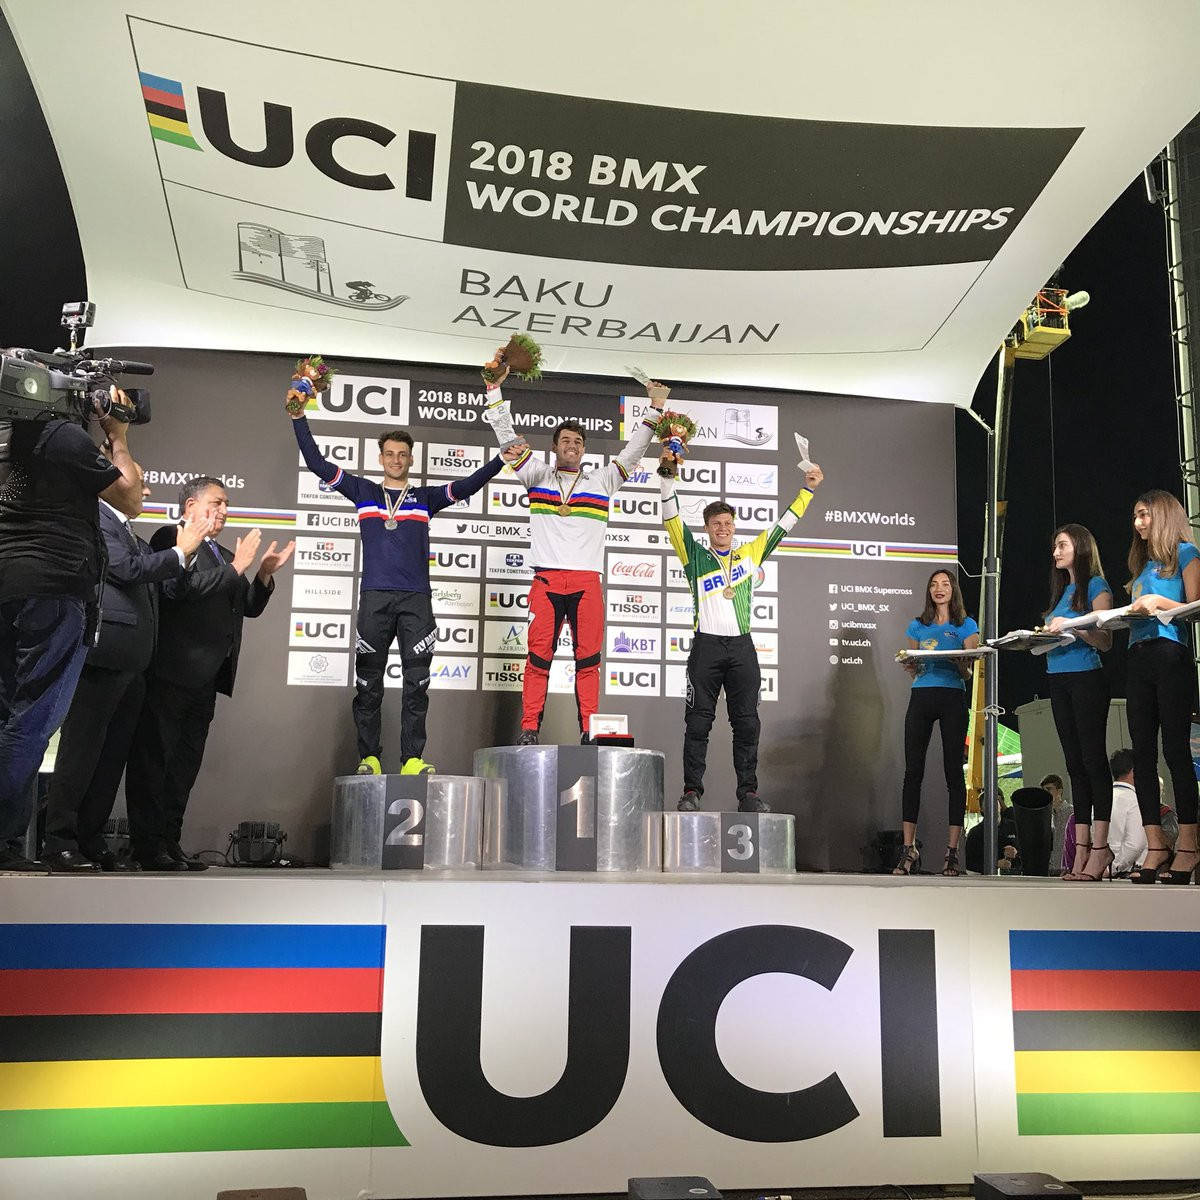 France's Andre swaps silver for gold at UCI BMX World Championships in Baku